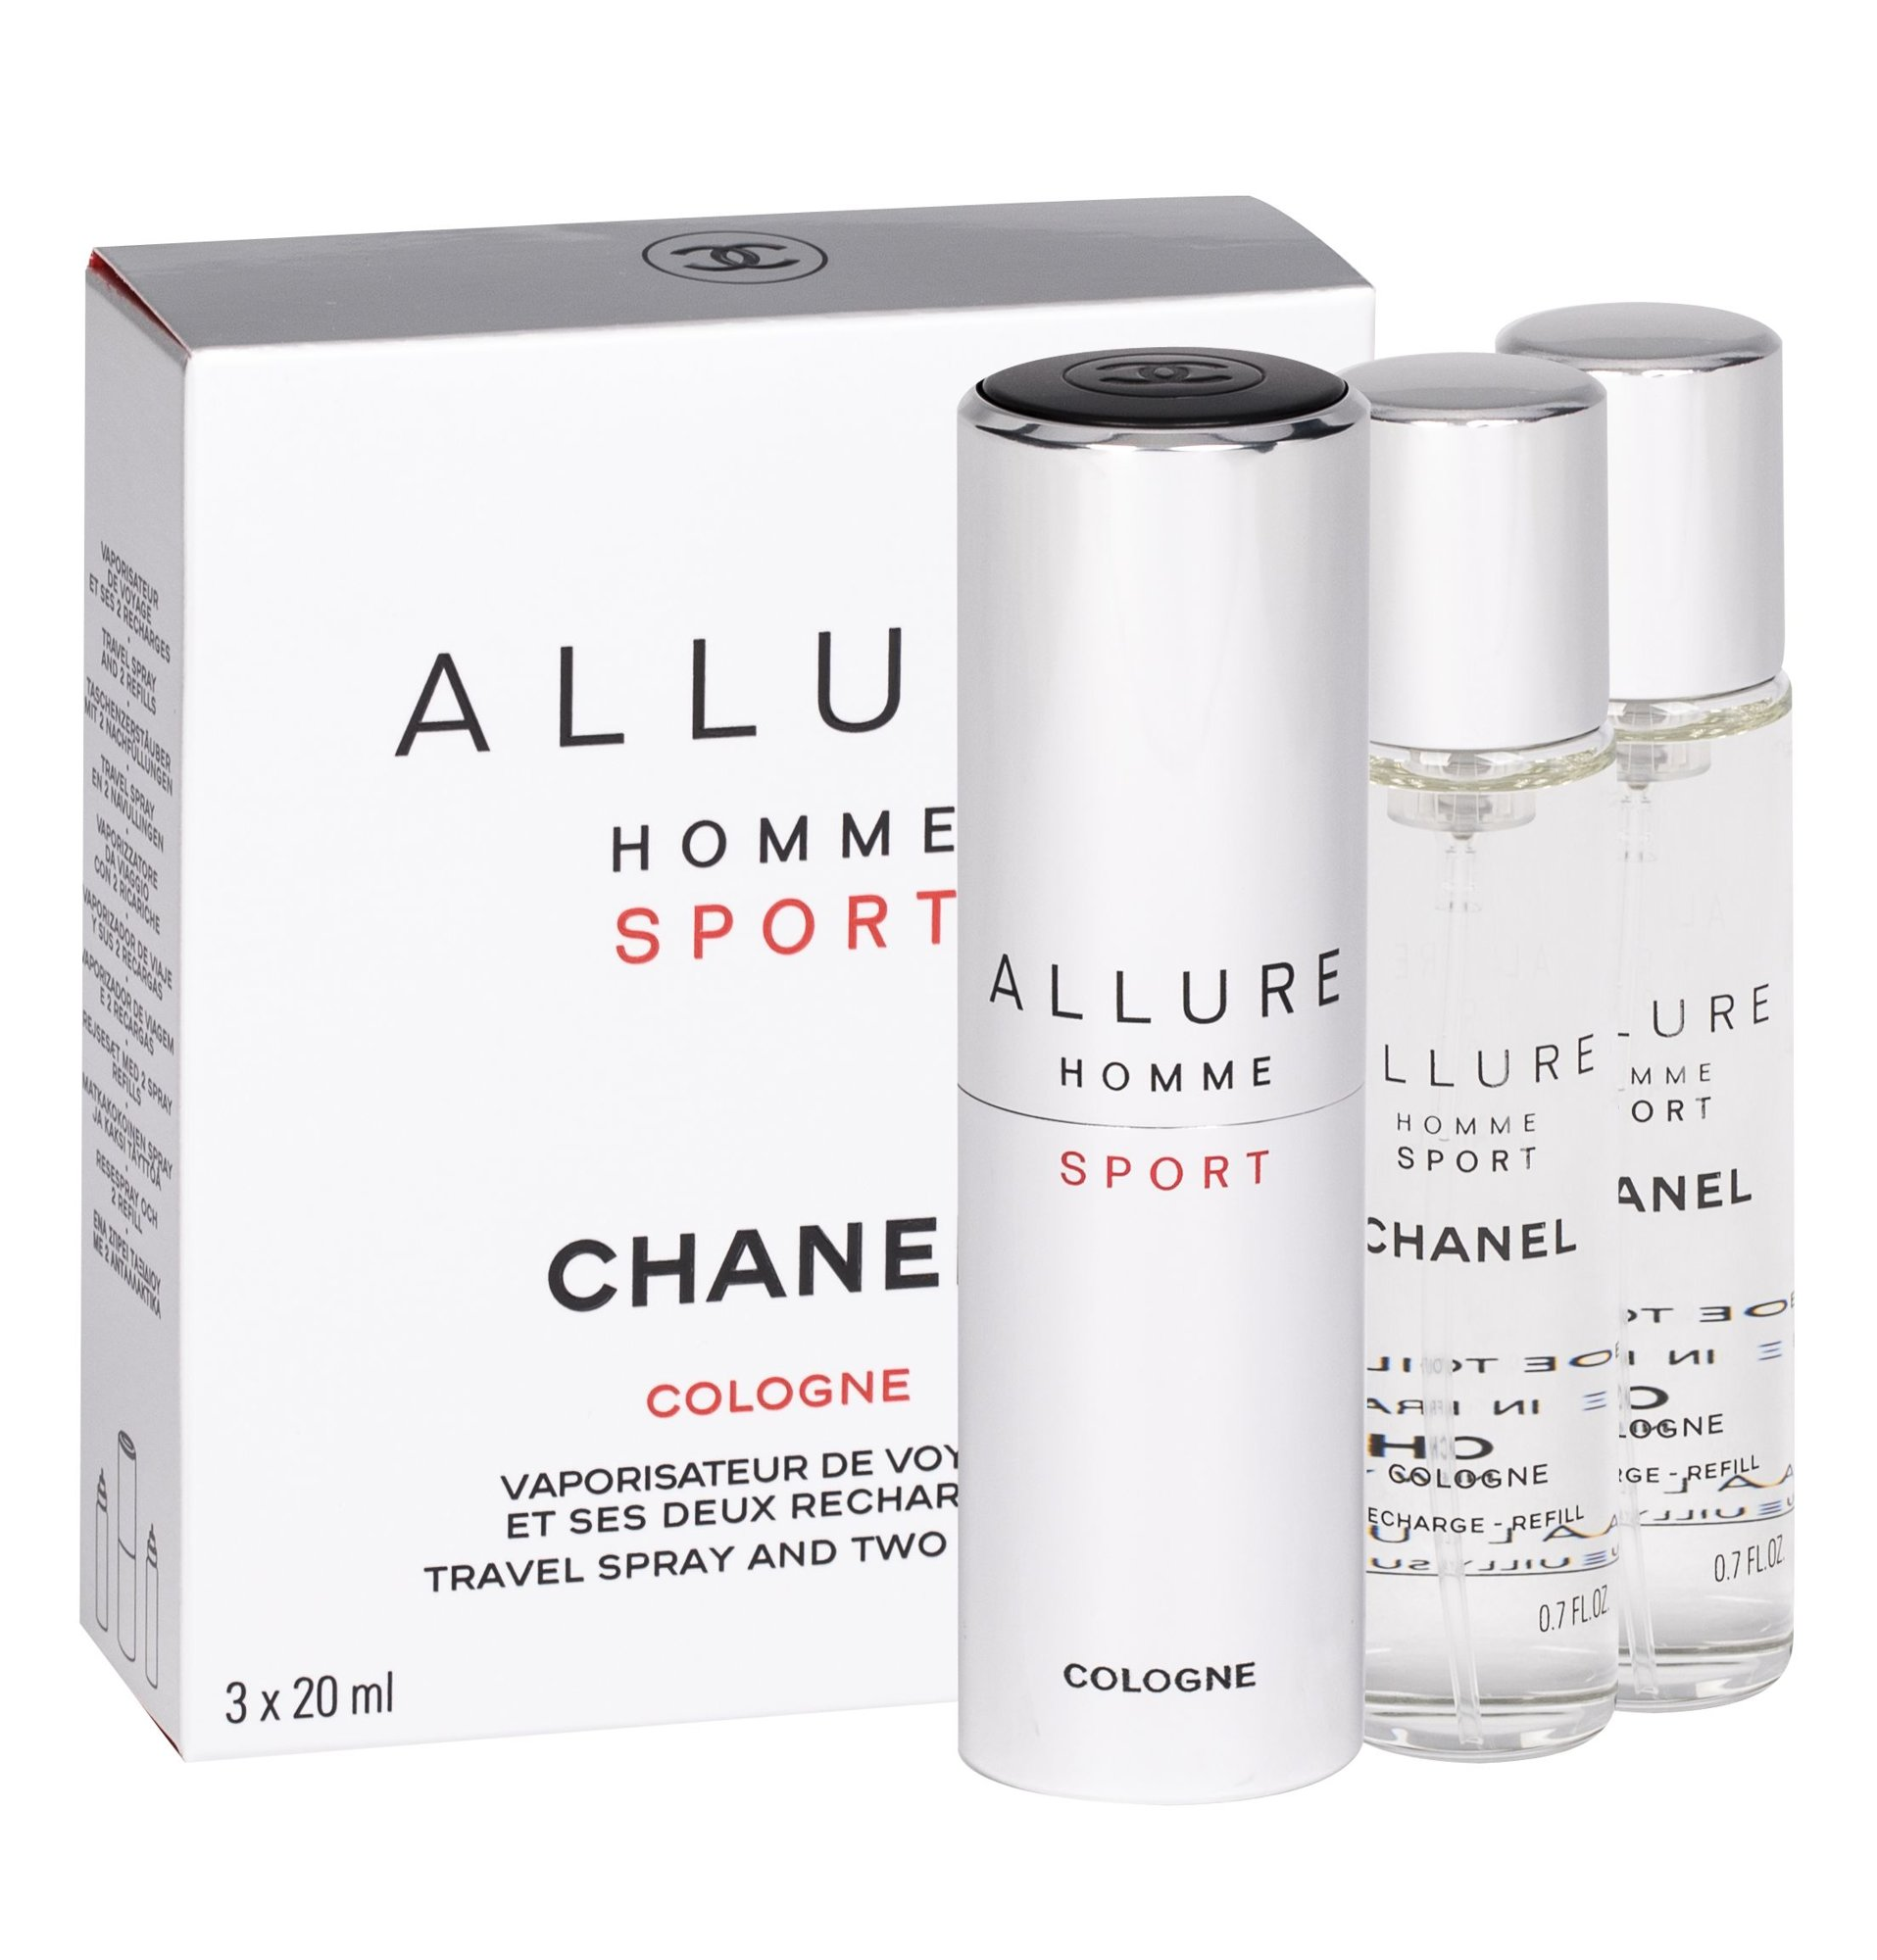 Chanel Allure Homme Sport Cologne, edc 3x20ml, Twist and Spray